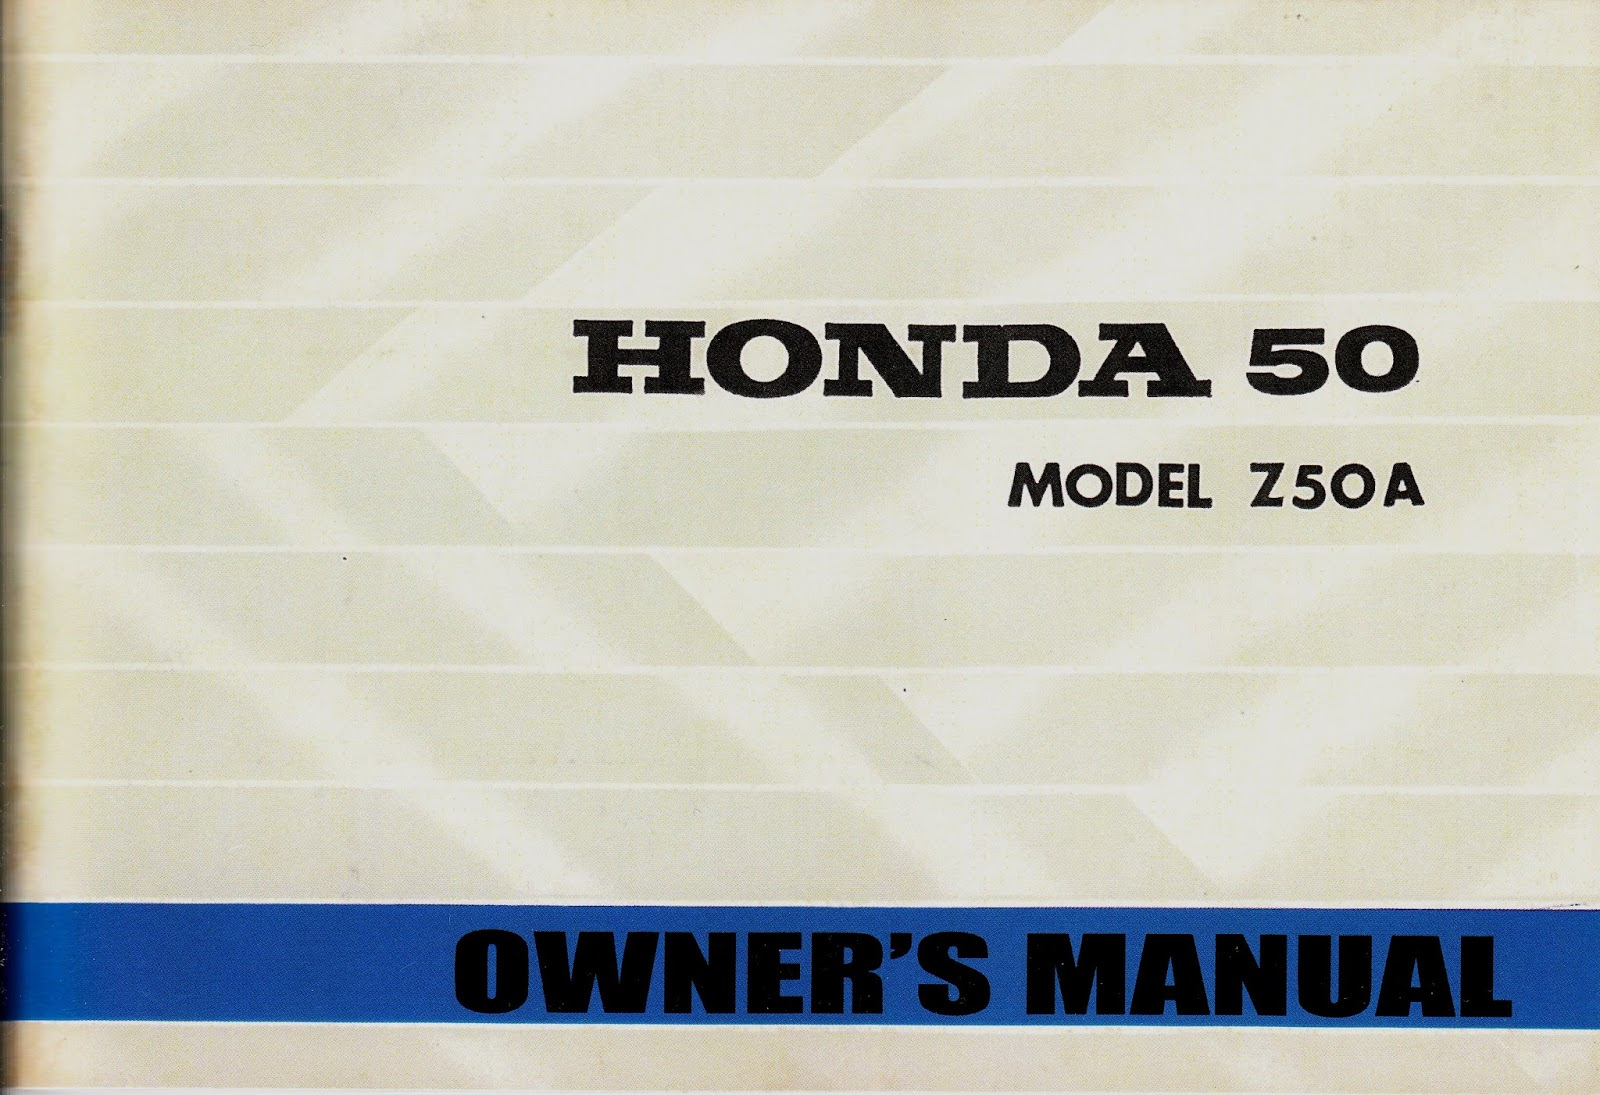 Z50 A Mini Trail Restoration Project Honda 50 Wiring Harness The Following Owners Manual Has Some Good General Information About Your Bike And It Includes Multiple Step By Procedures With Pictures On